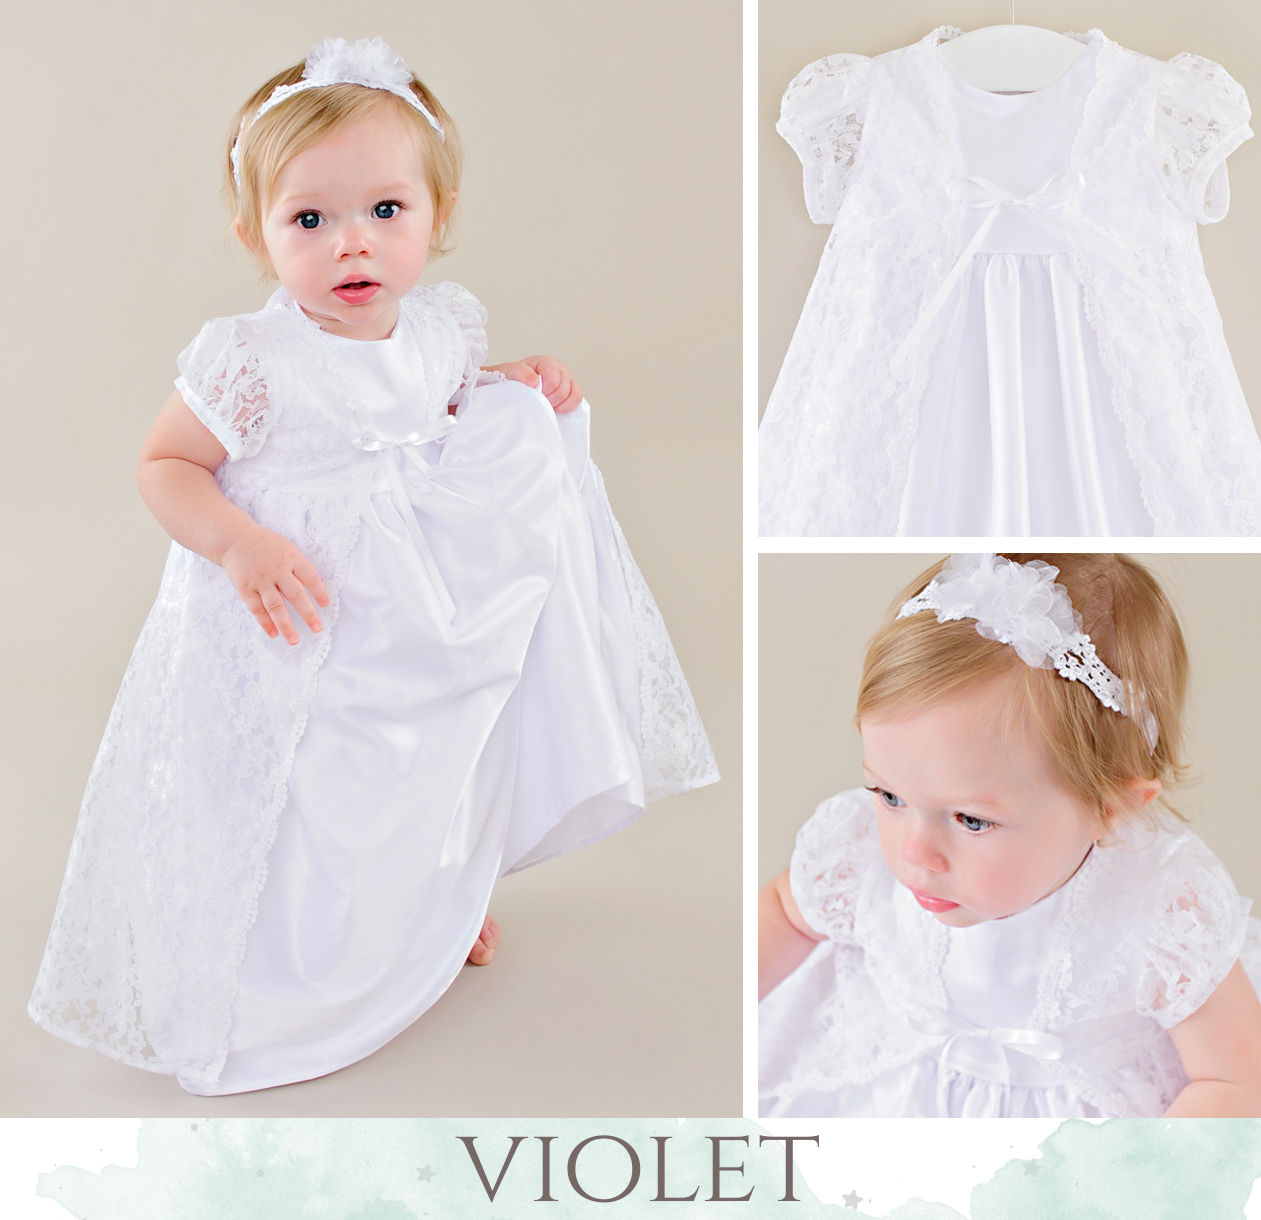 Violet LDS Blessing Dress